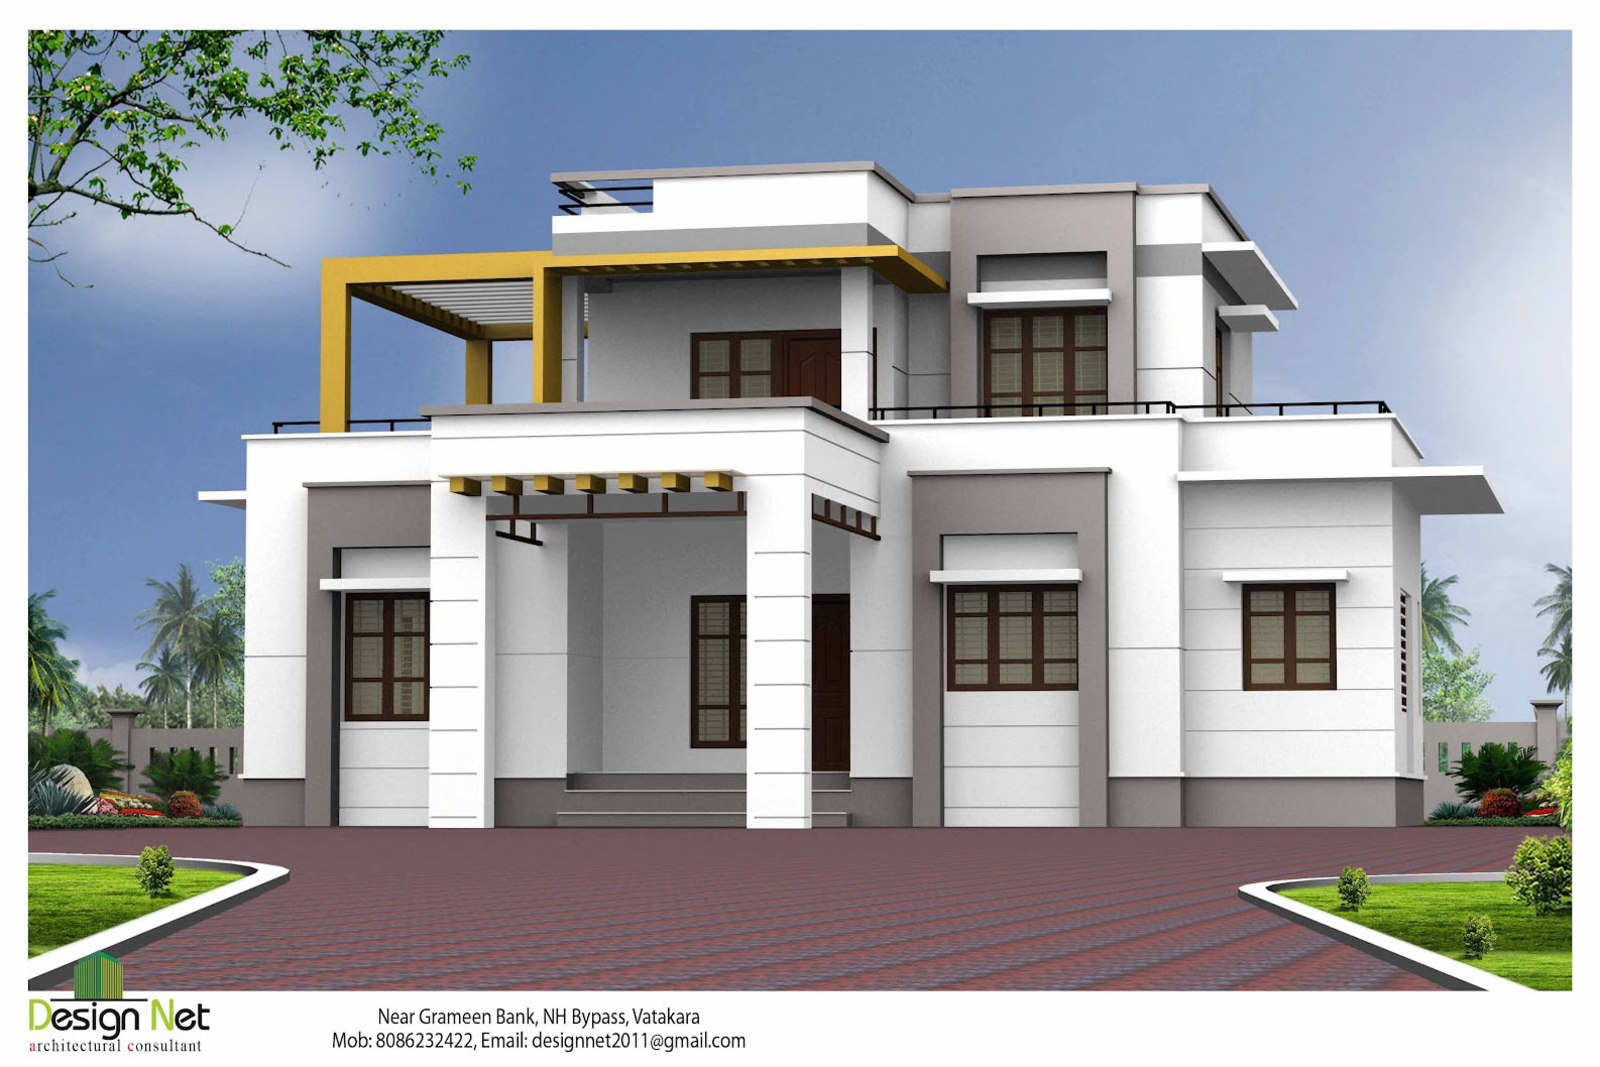 Outside Exterior Design Of Image Gallery Outside House Designs